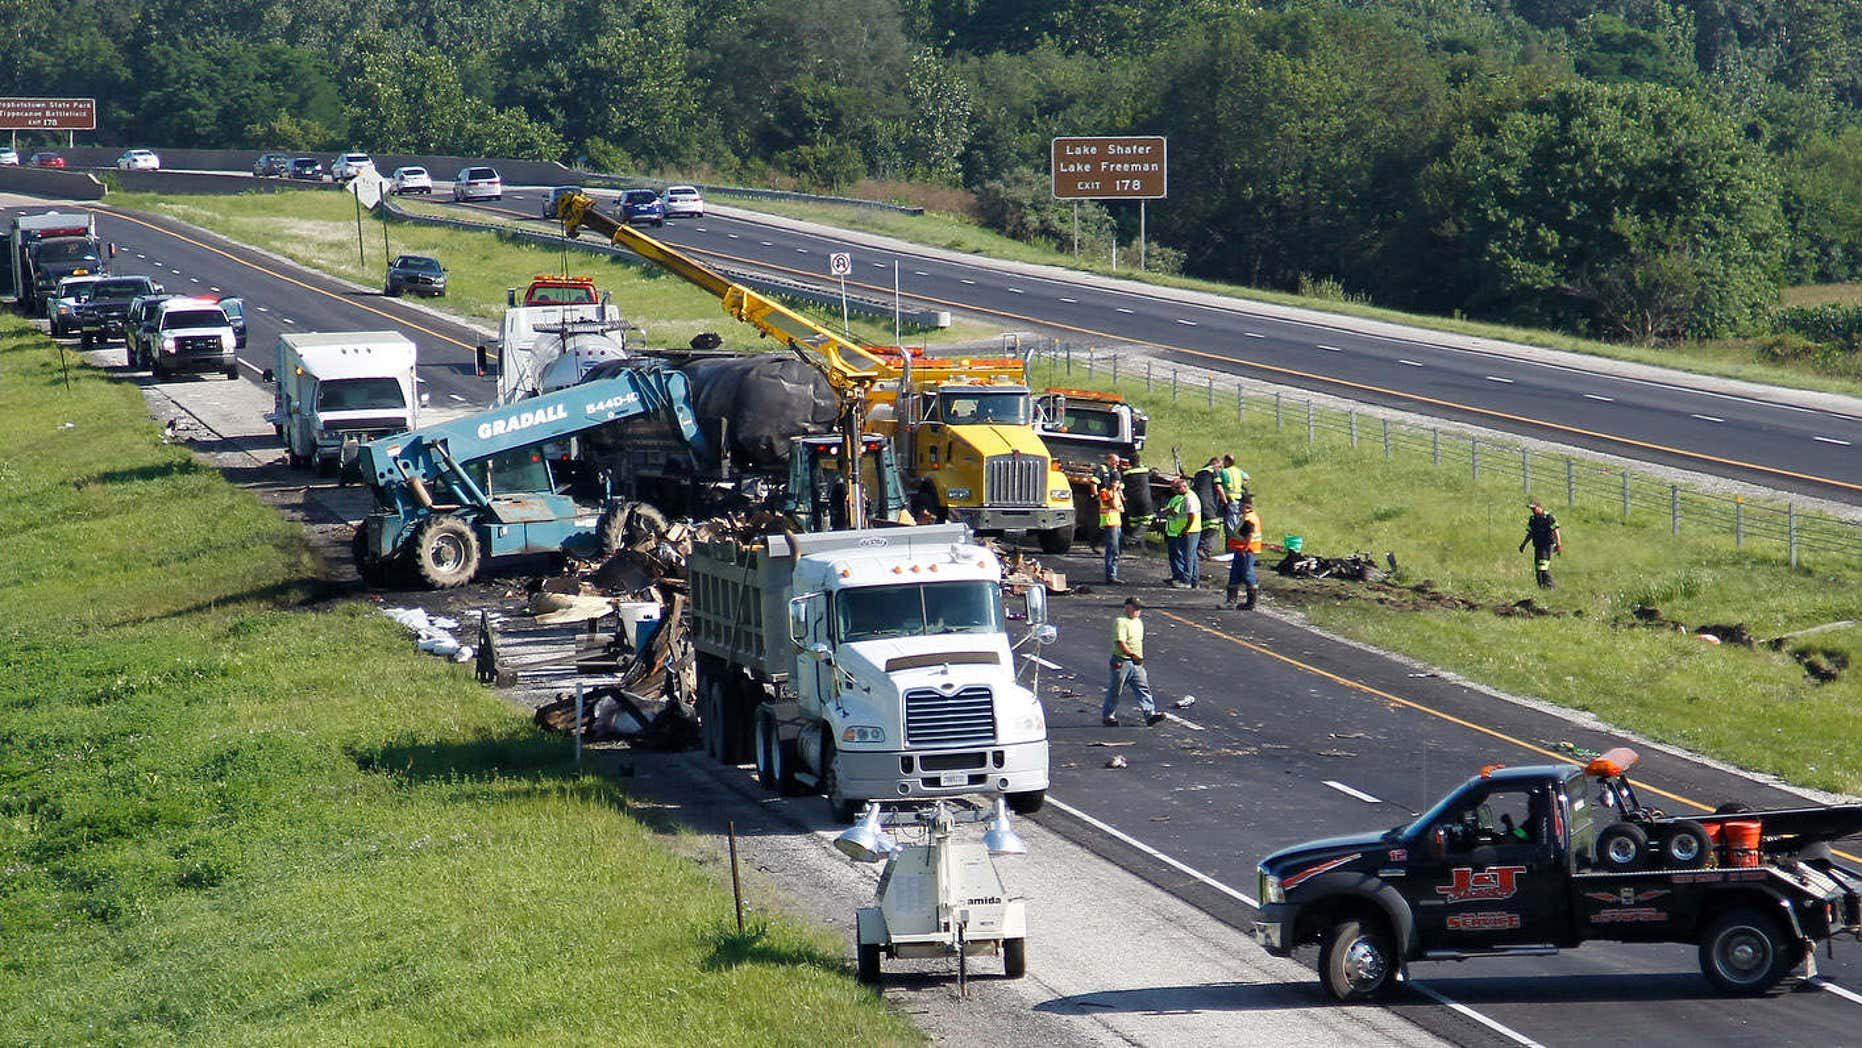 July 24, 2015: Crews cleanup debris following a fiery crash.